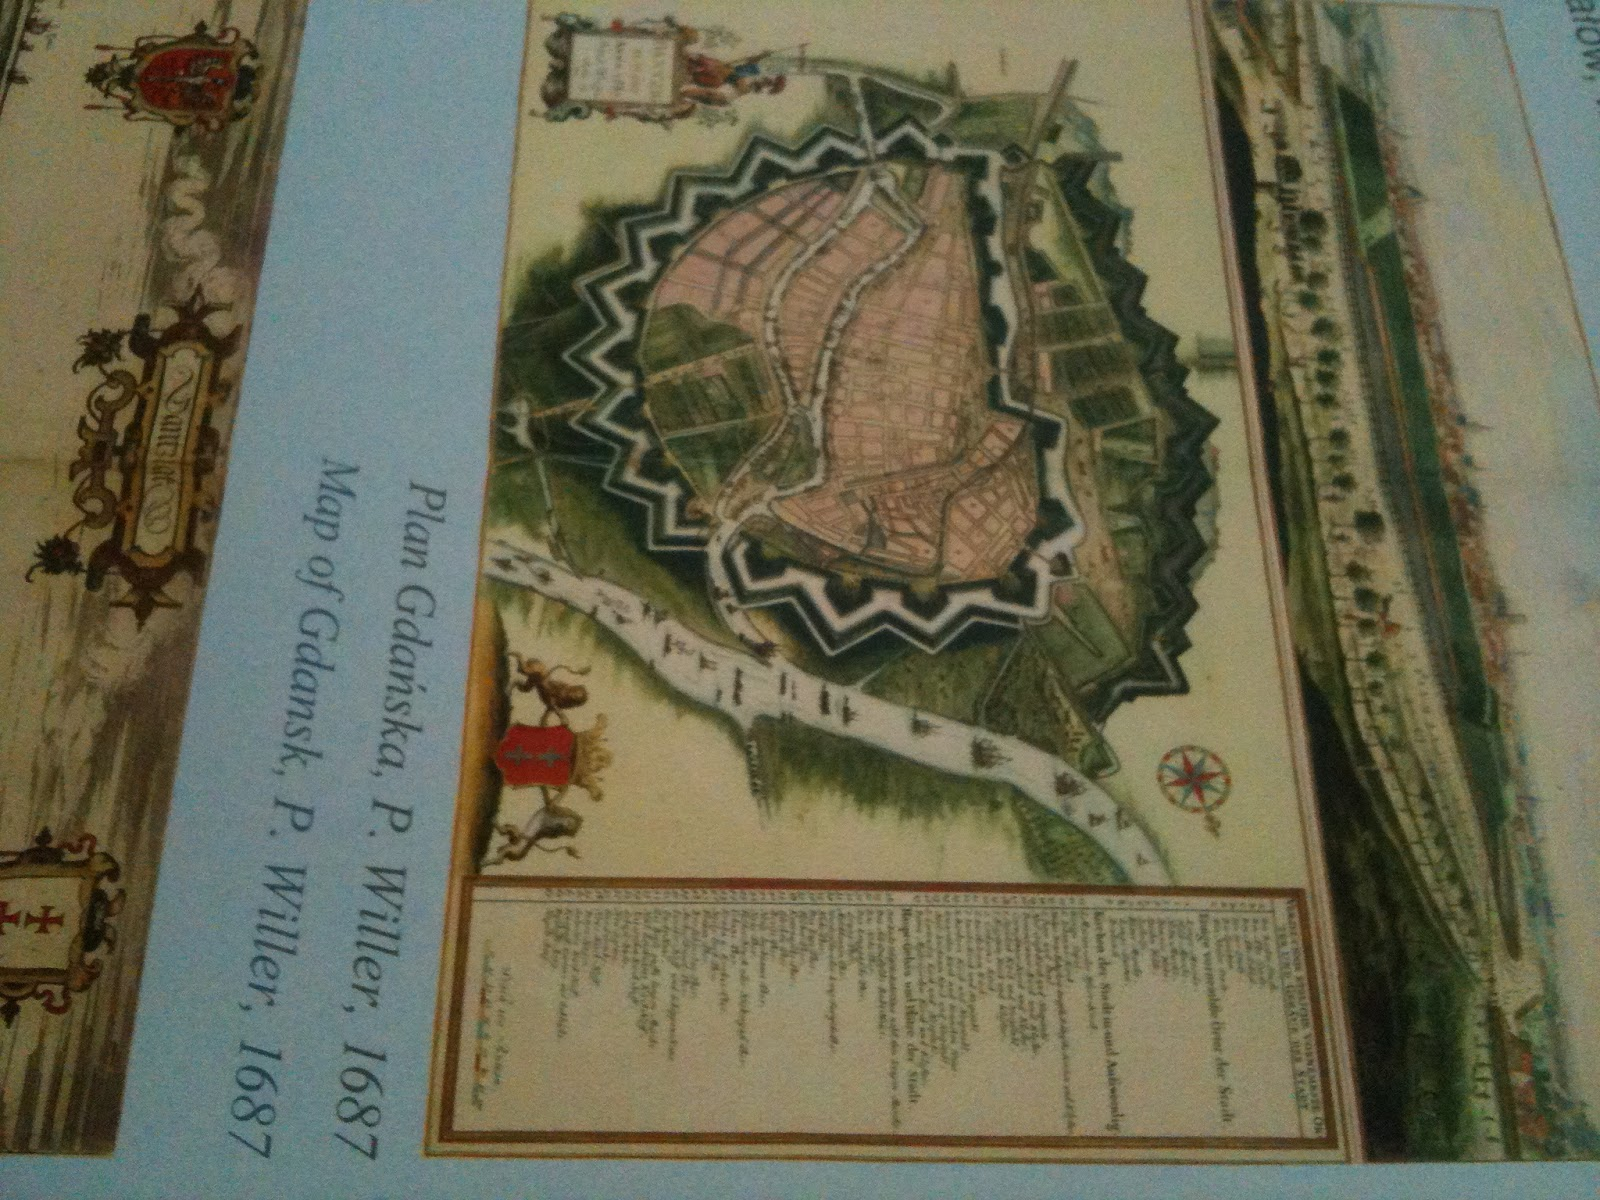 extensive moat system of gdansk circa 1687